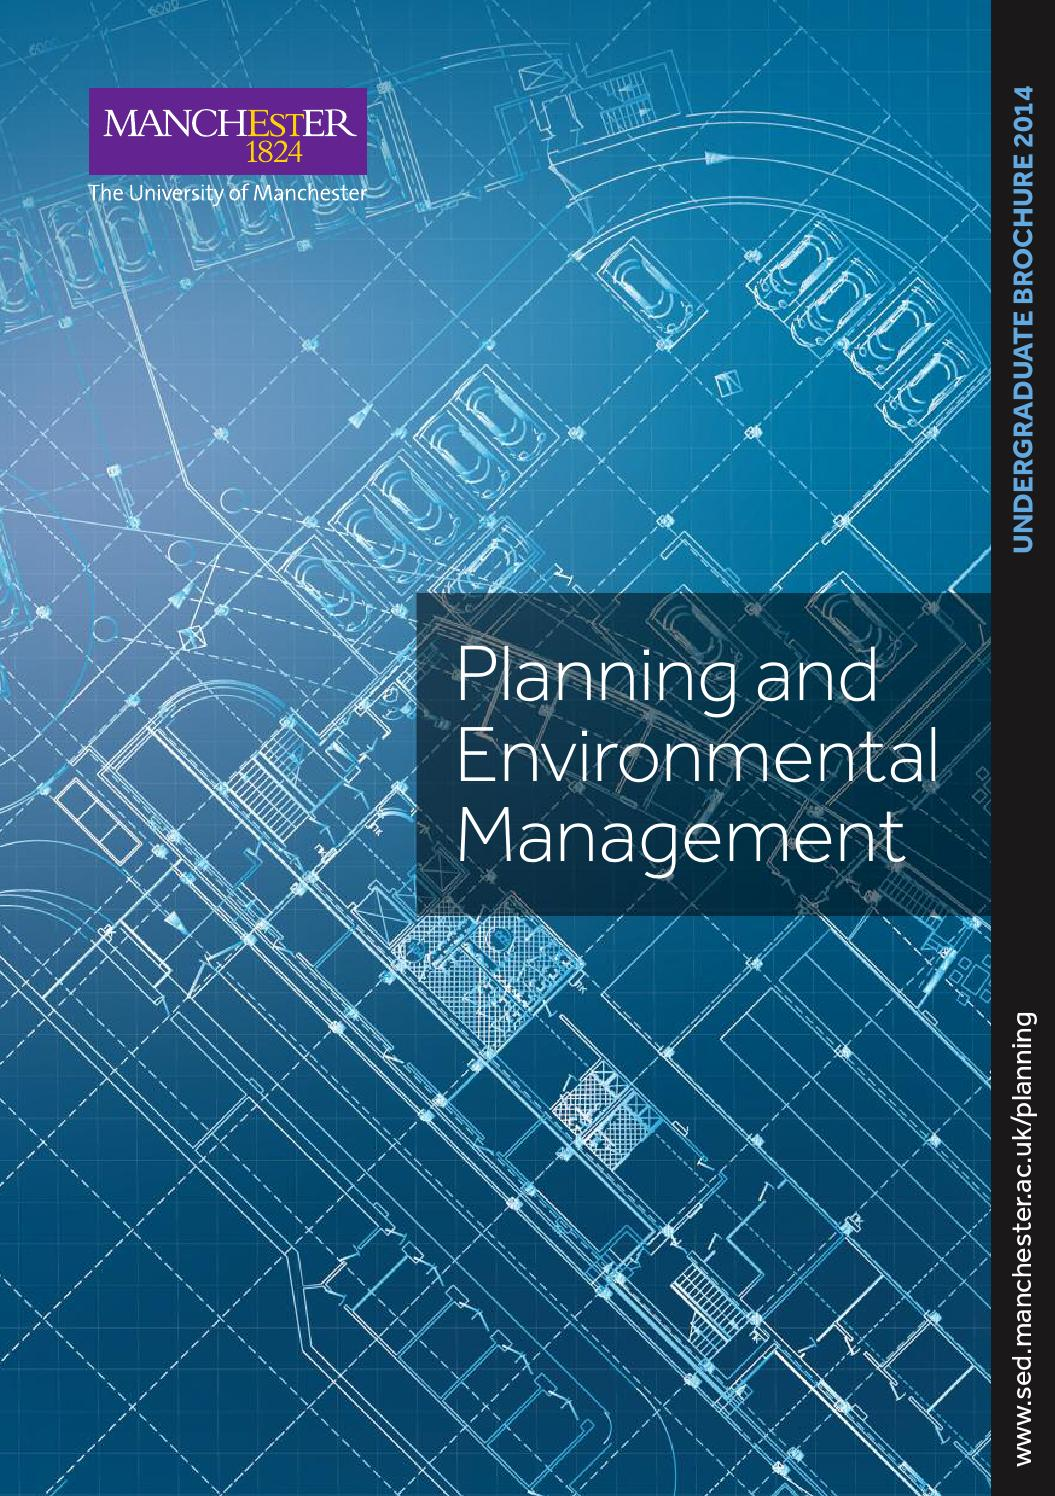 I have completed your BShons environmental planning and management wondering what should you do further?